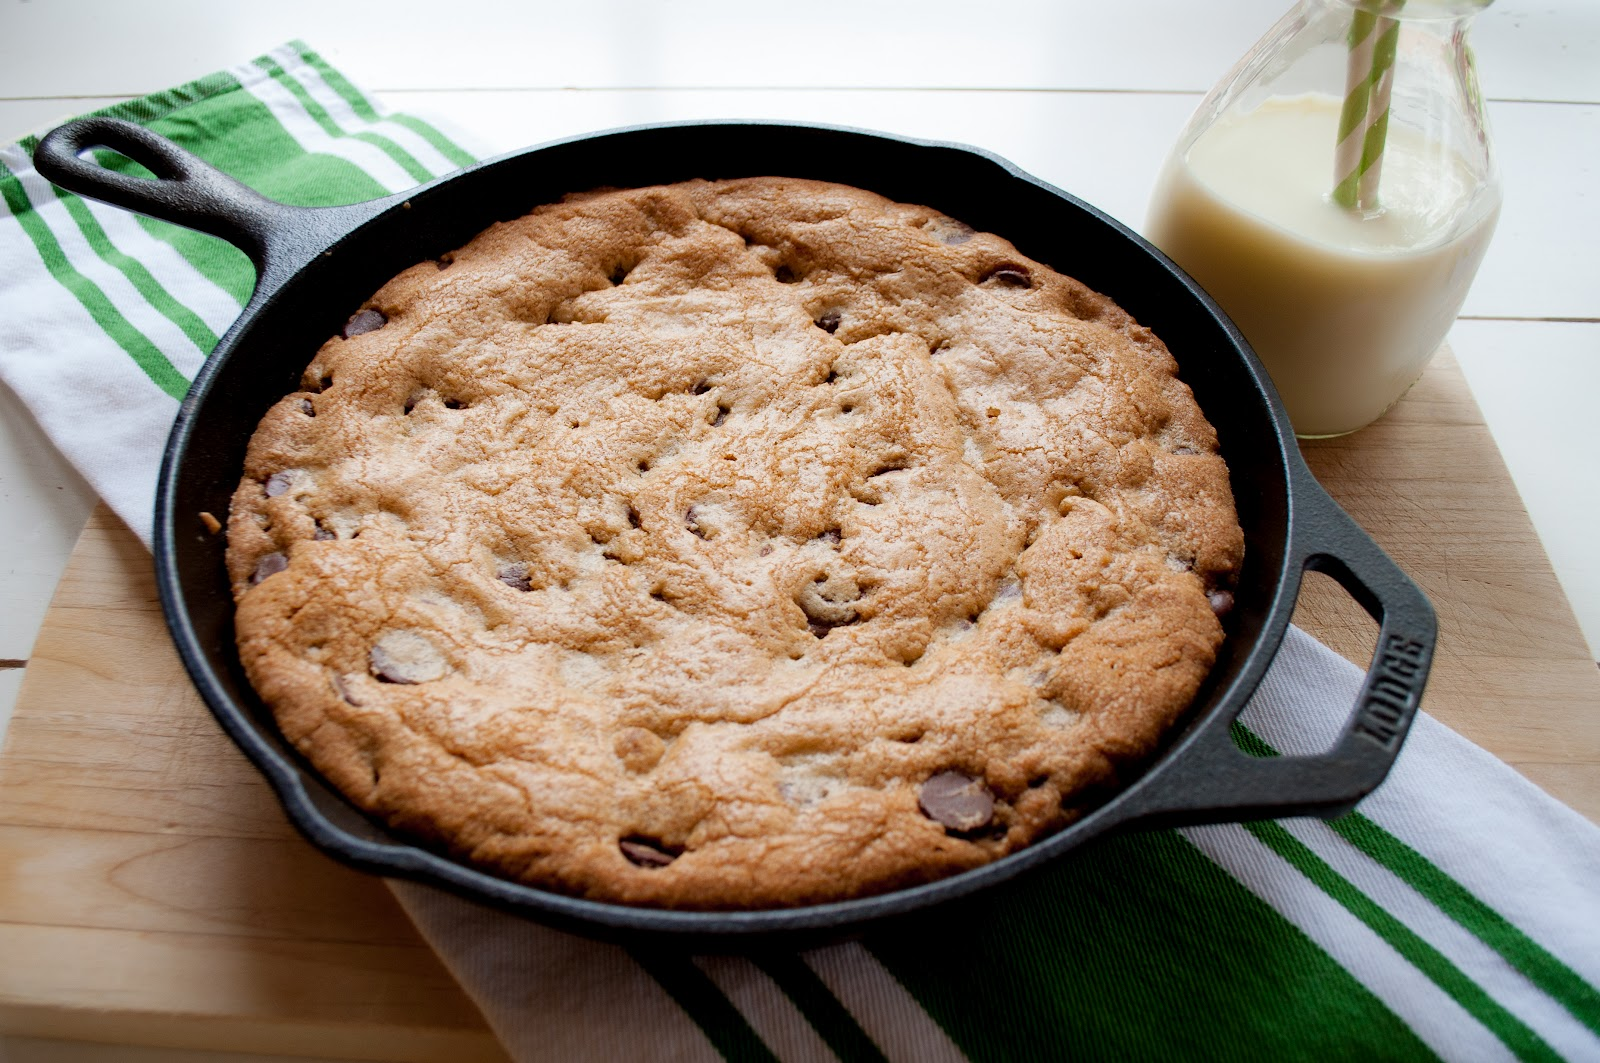 skillet-baked chocolate chip cookie - Marin Mama Cooks